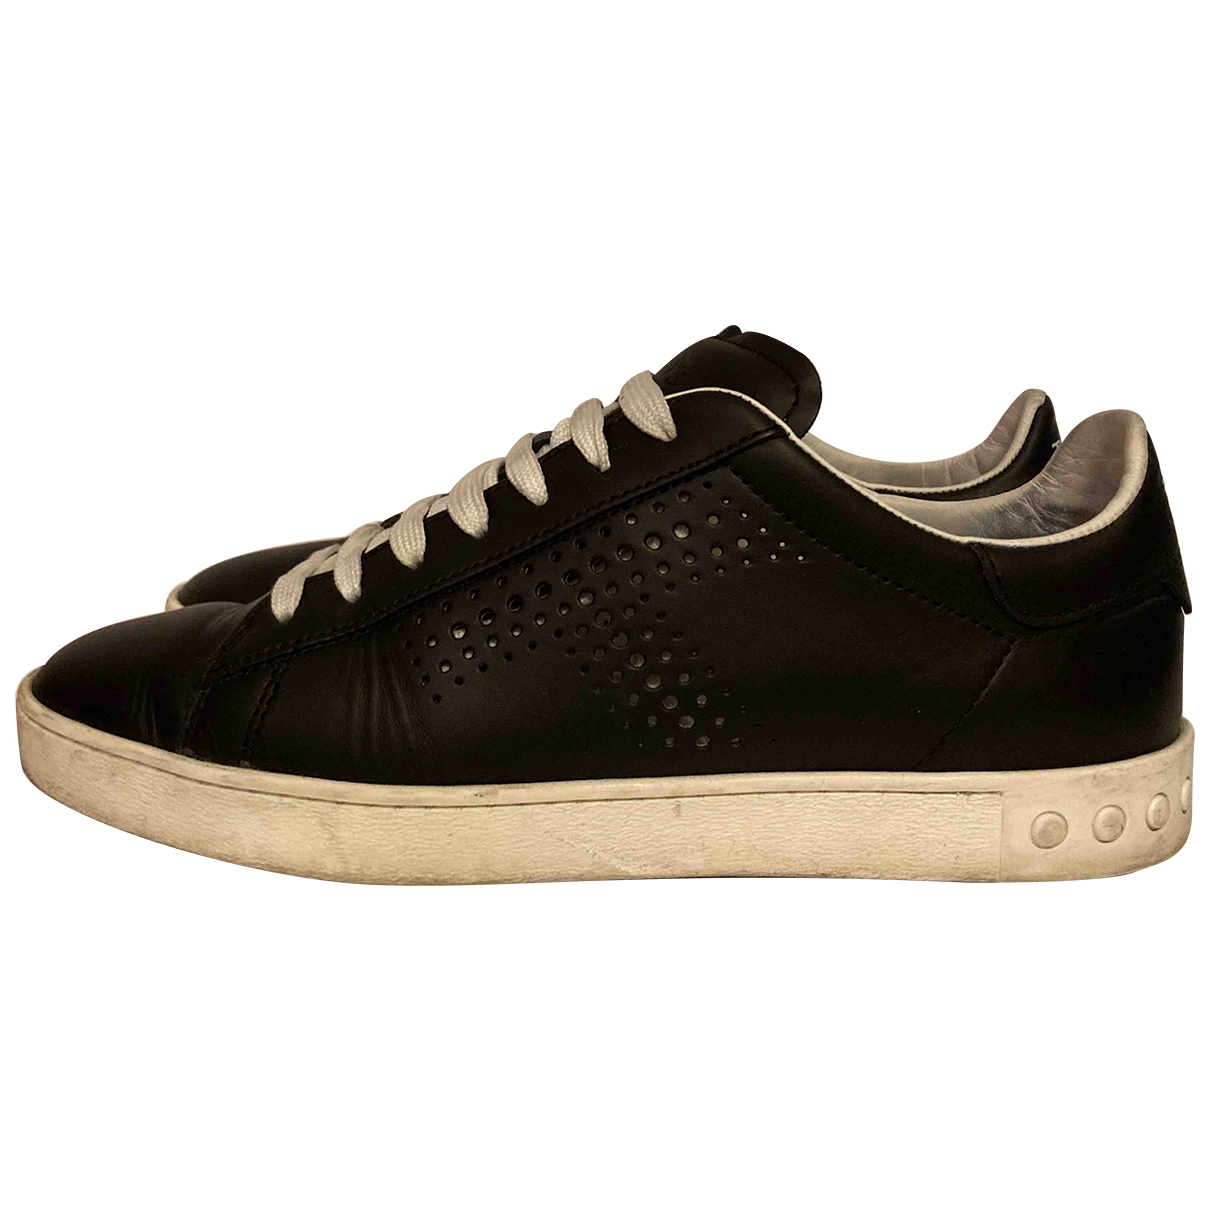 Tod's N Black Leather Trainers for Women 38 EU